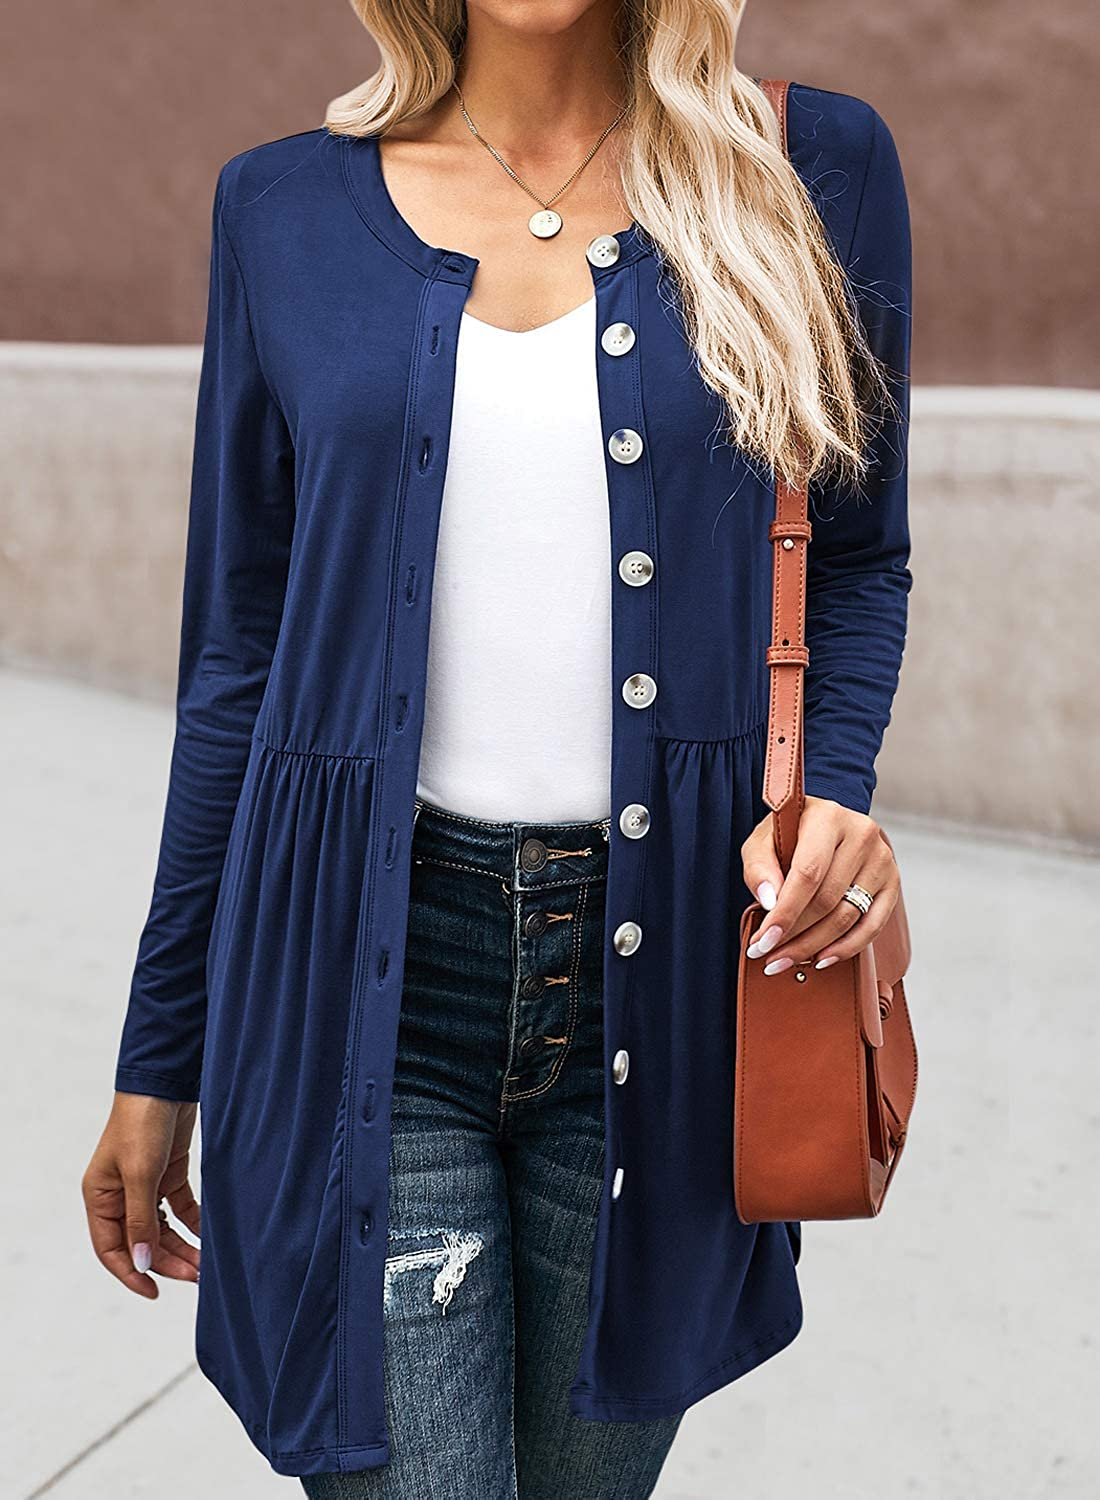 SANDERY Womens Long Sleeve Cardigan Open Front Button Down Pleated Draped Casual Solid Color Coat Outwear